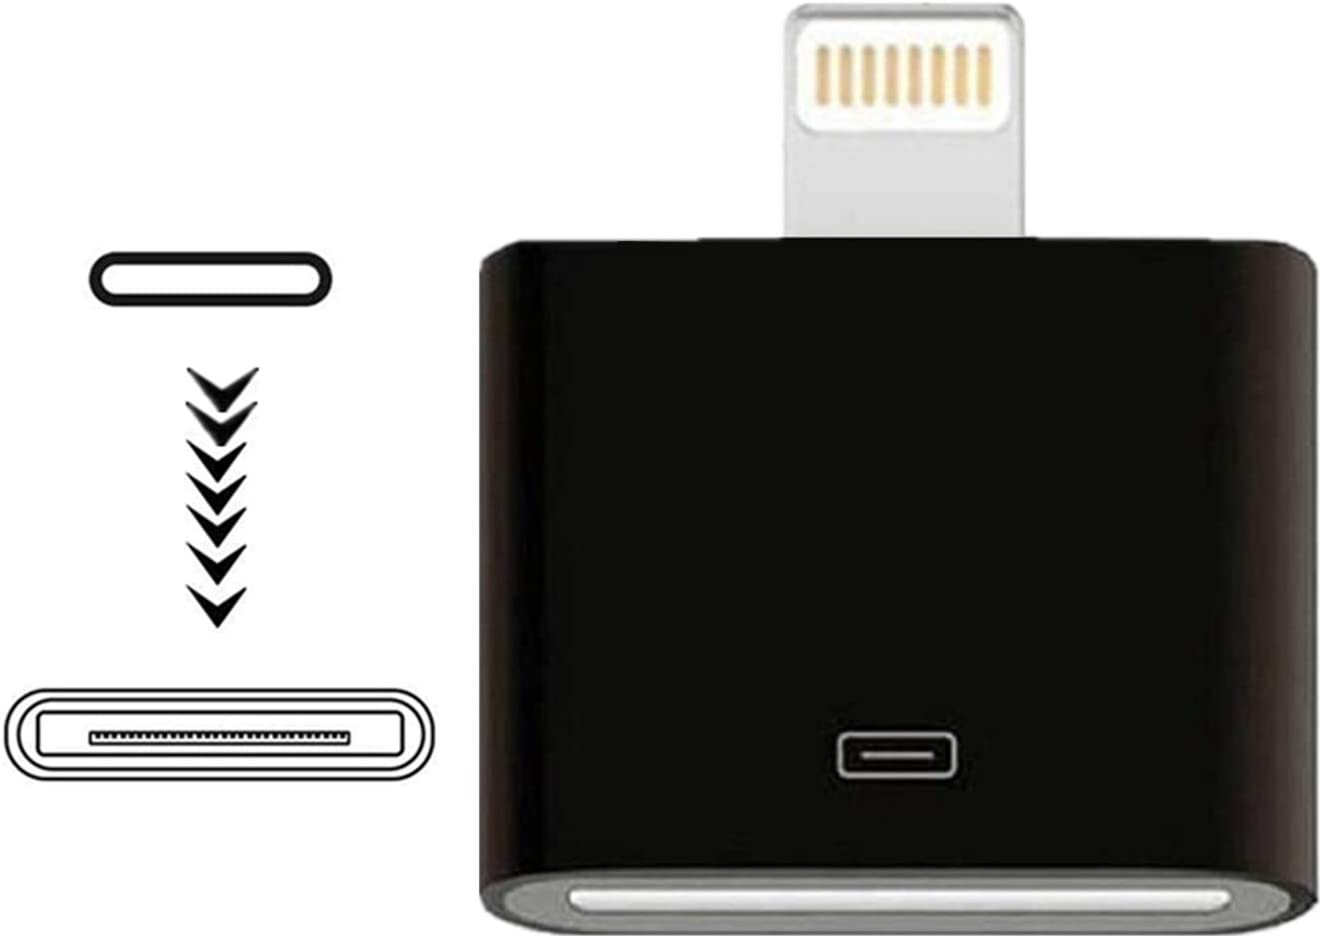 [MFi Certified] iPhone Lightning to 30-Pin Adapter,Sharllen 8-Pin Male to 30-Pin Female Charging & Sync Converter Connector Compatible iPhone 12 11 X 8 7 6P 5S 4S 4 3 3G/iPad/iPod Black(No Audio)